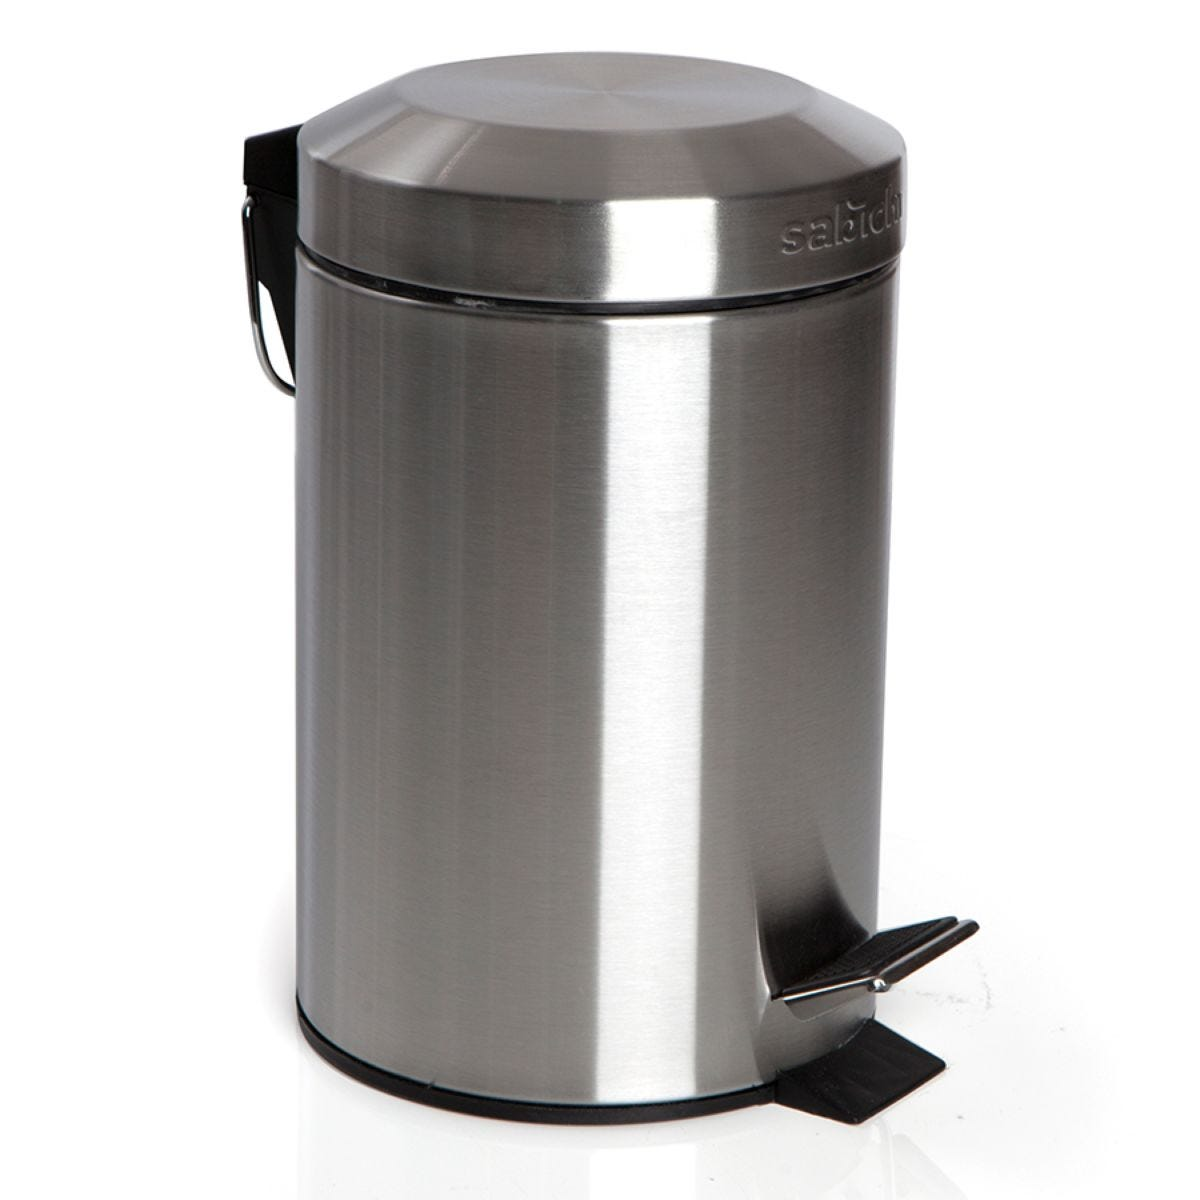 Sabichi 3L Stainless Steel Small Pedal Bin – Silver